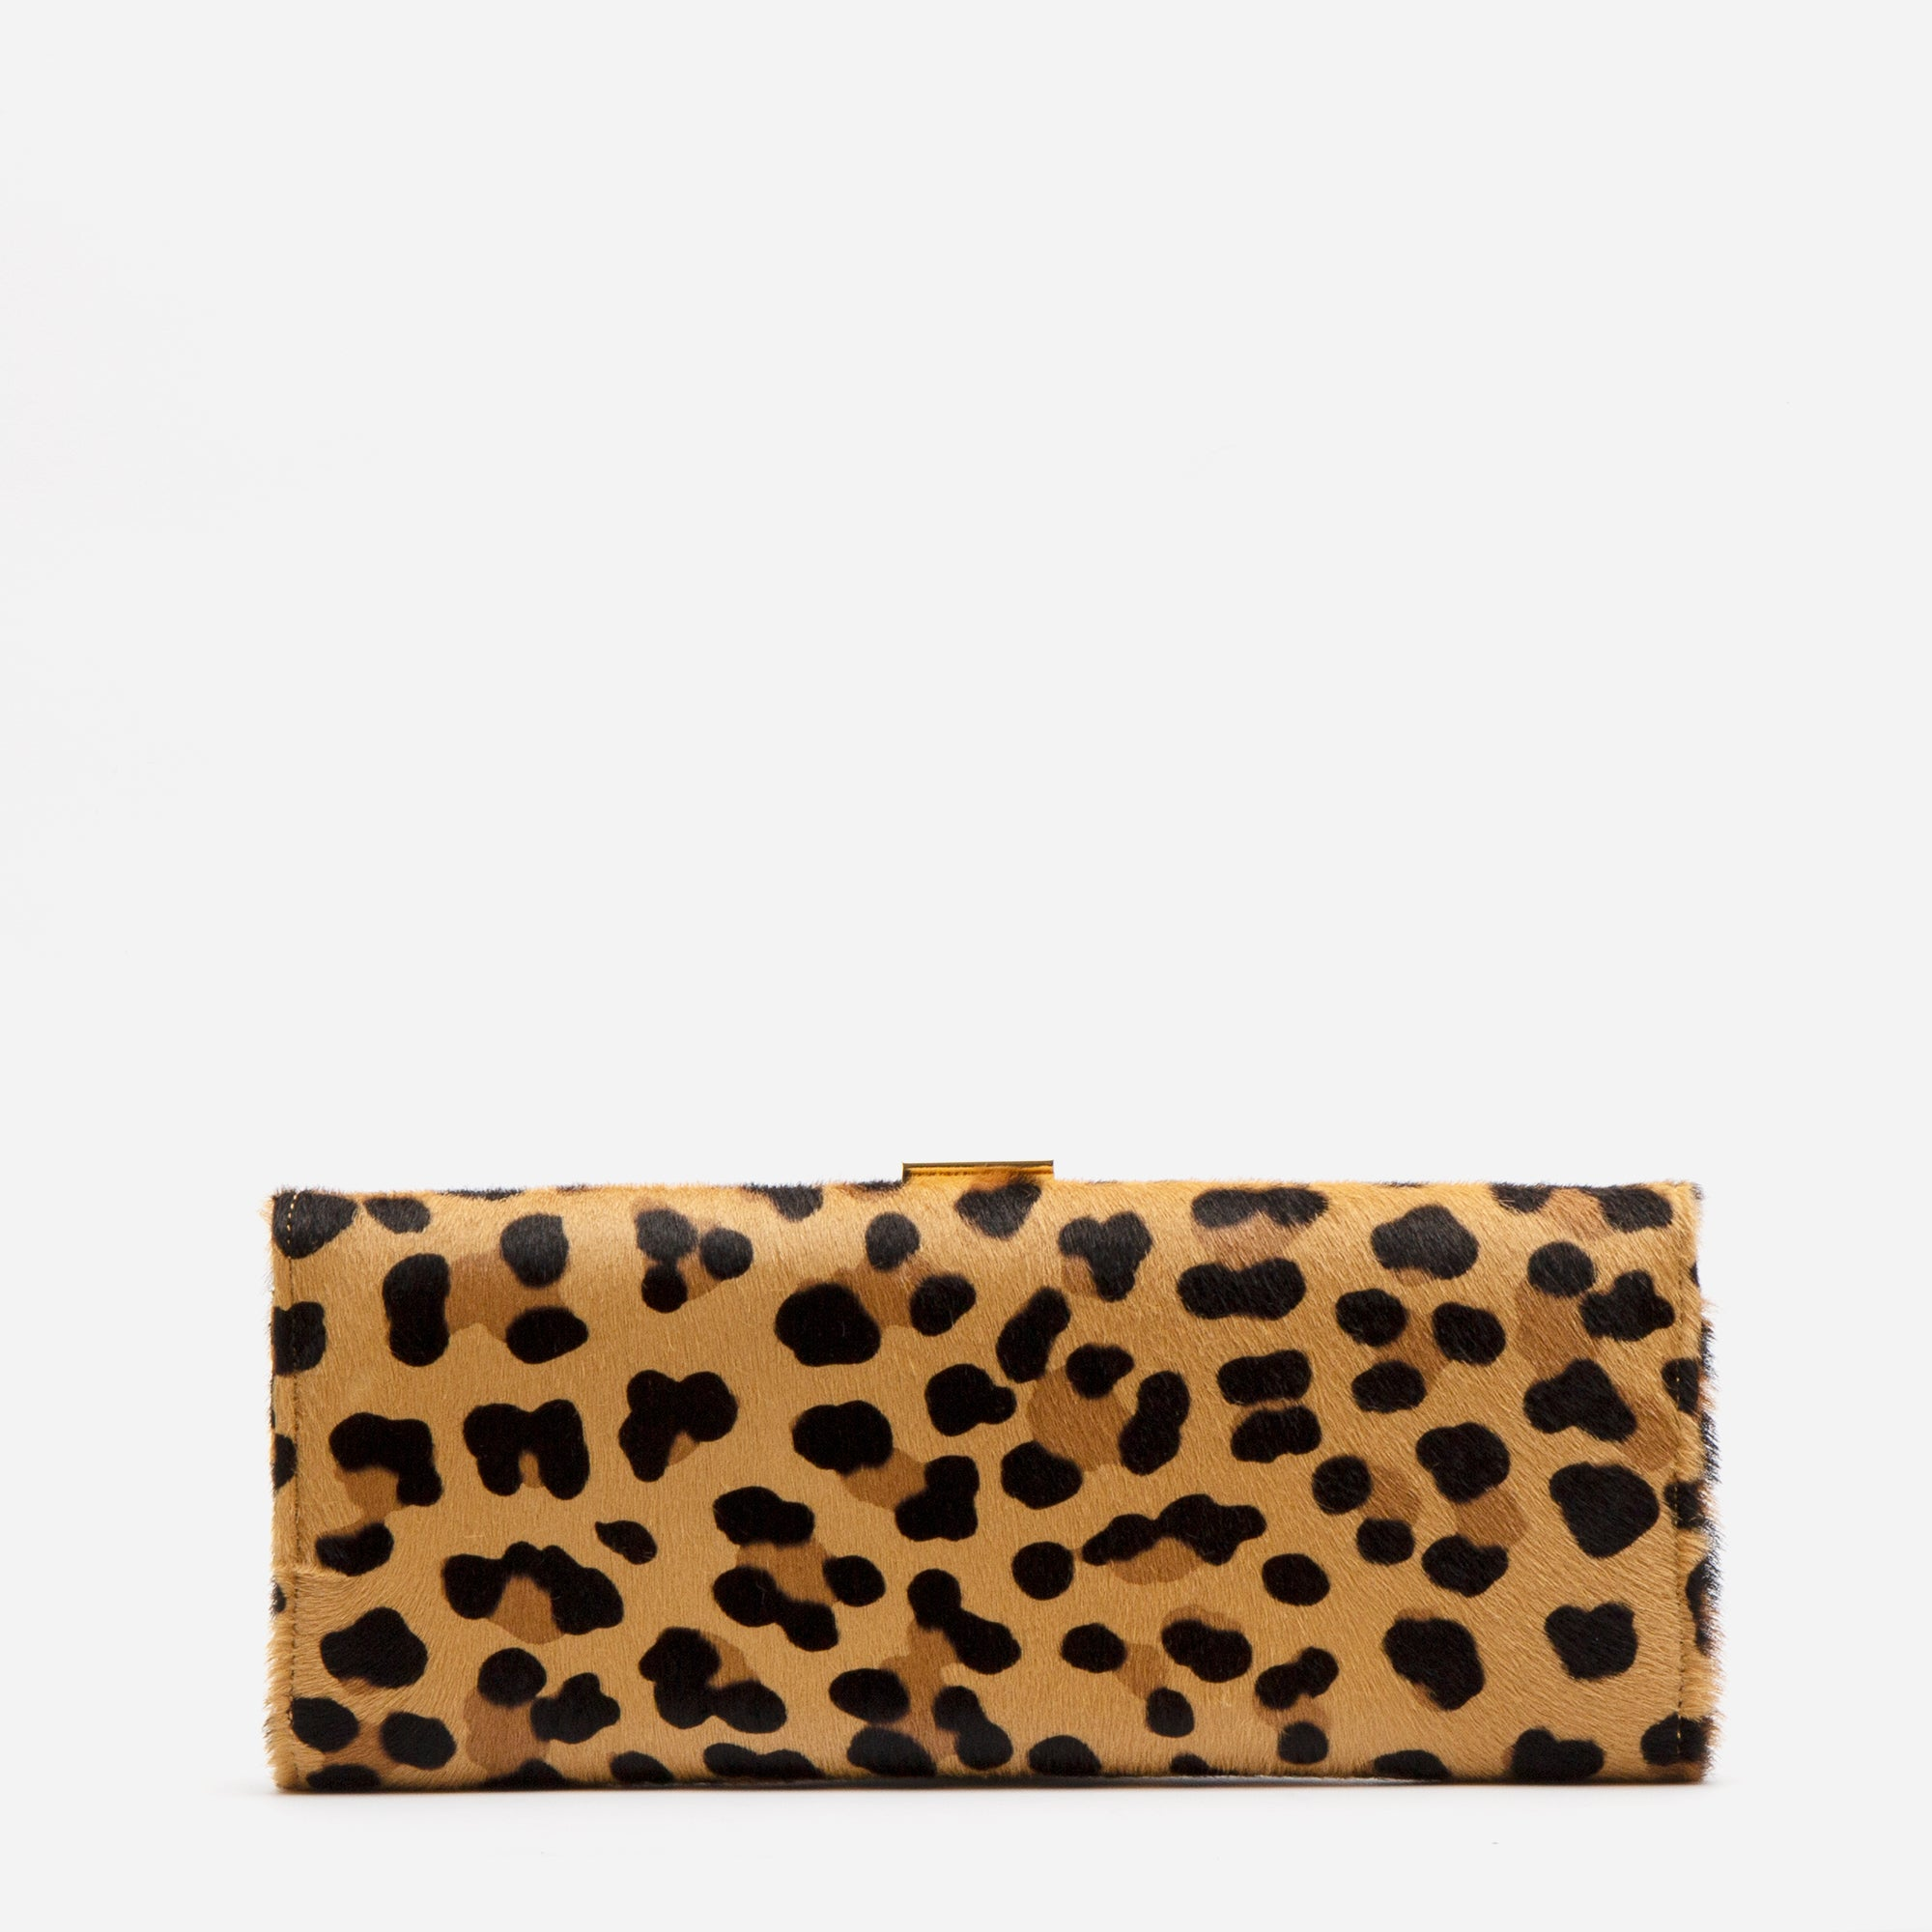 Eleni Handheld Clutch Leopard Printed Haircalf - Frances Valentine